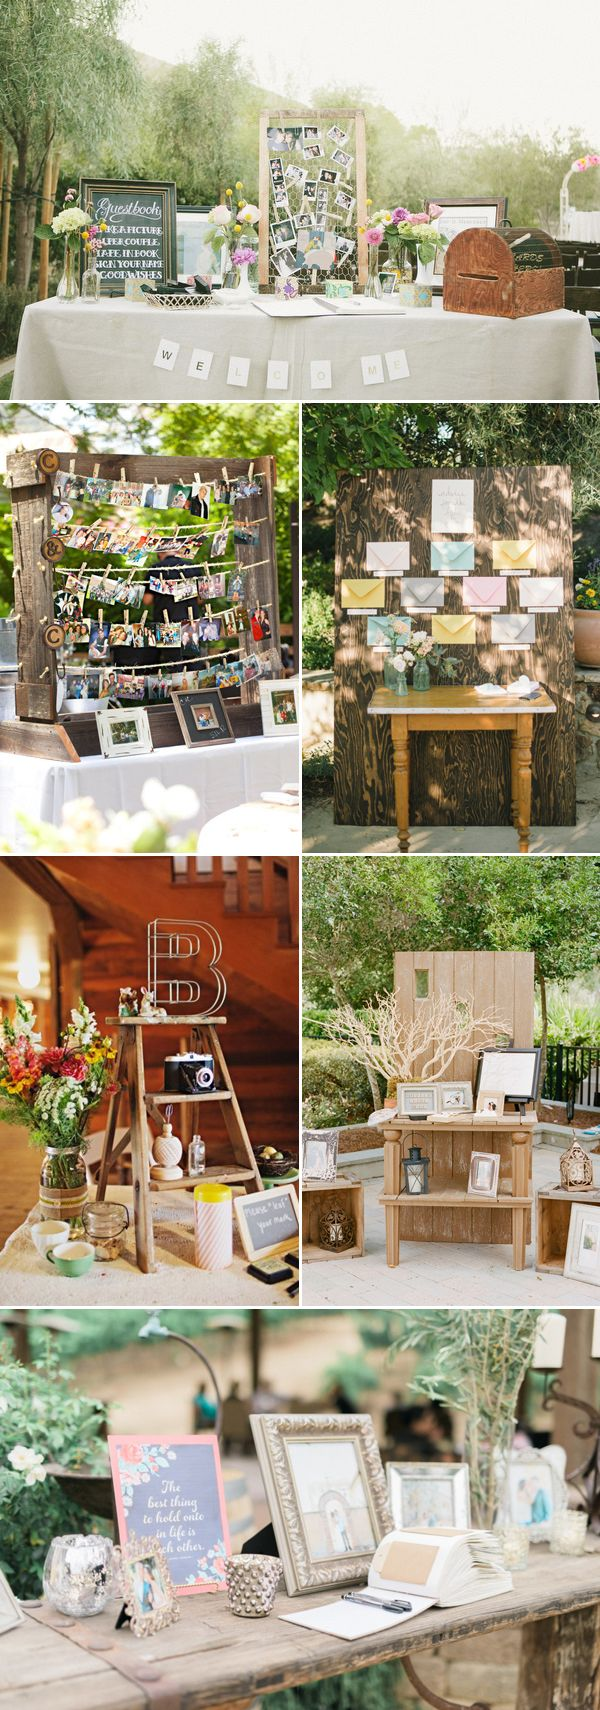 Wedding Sign In Table Decorations Amusing 35 Creatively Beautiful Guestbook And Signin Table Décor Ideas Design Inspiration